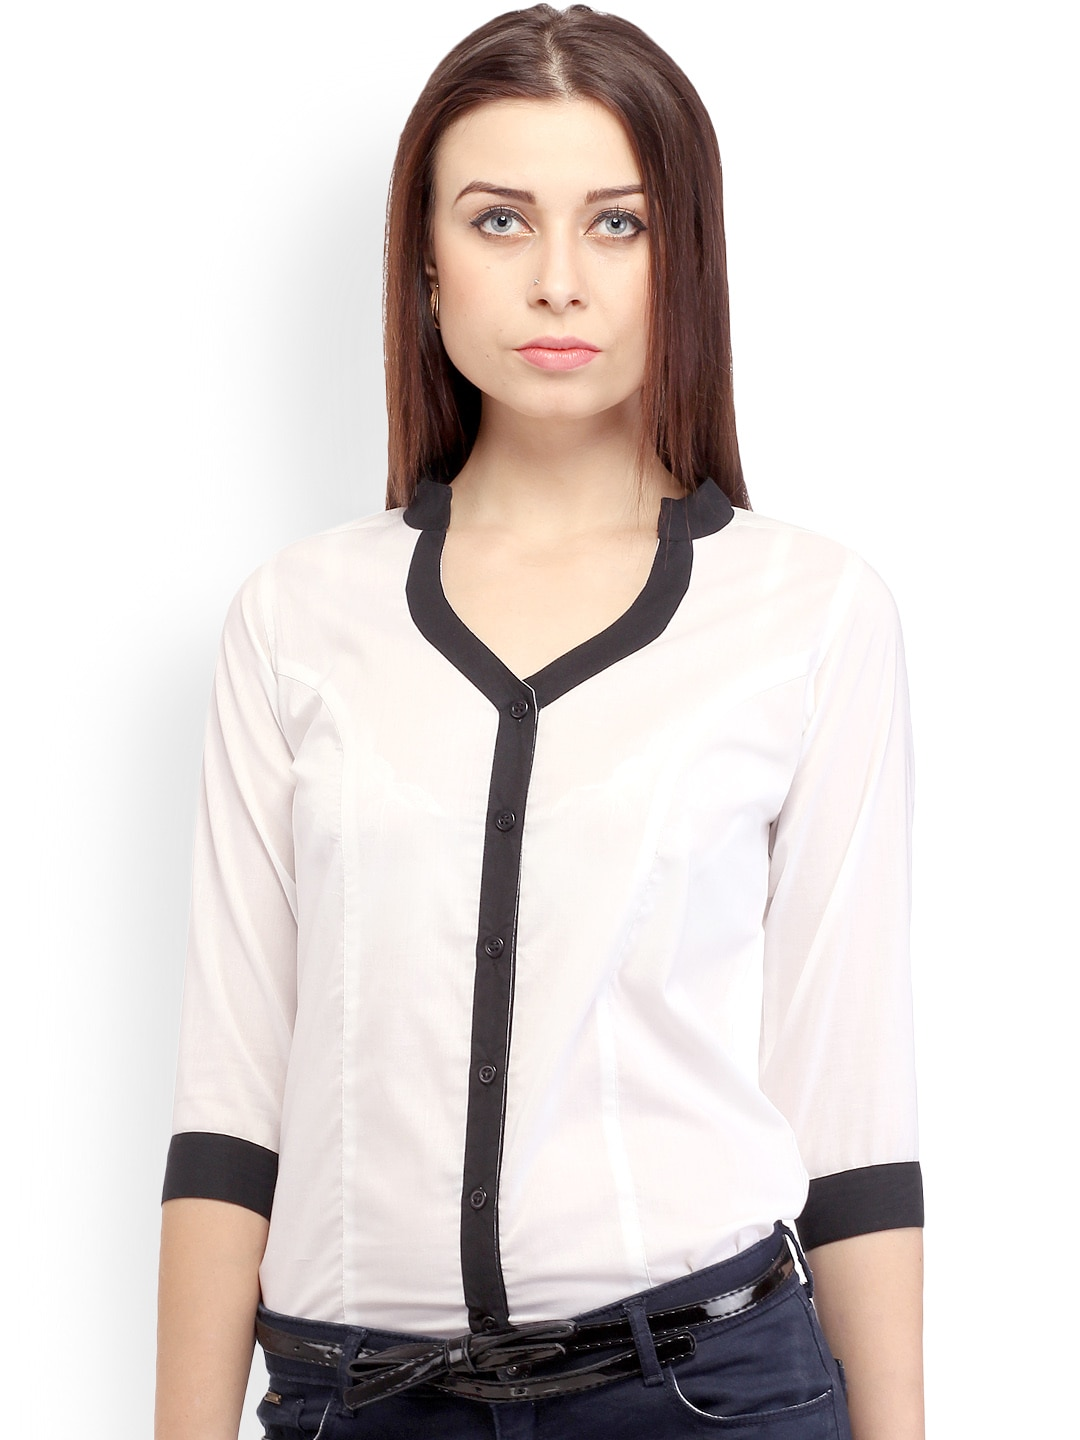 536d1248925fc5 Women Shirts Price List in India 28 April 2019